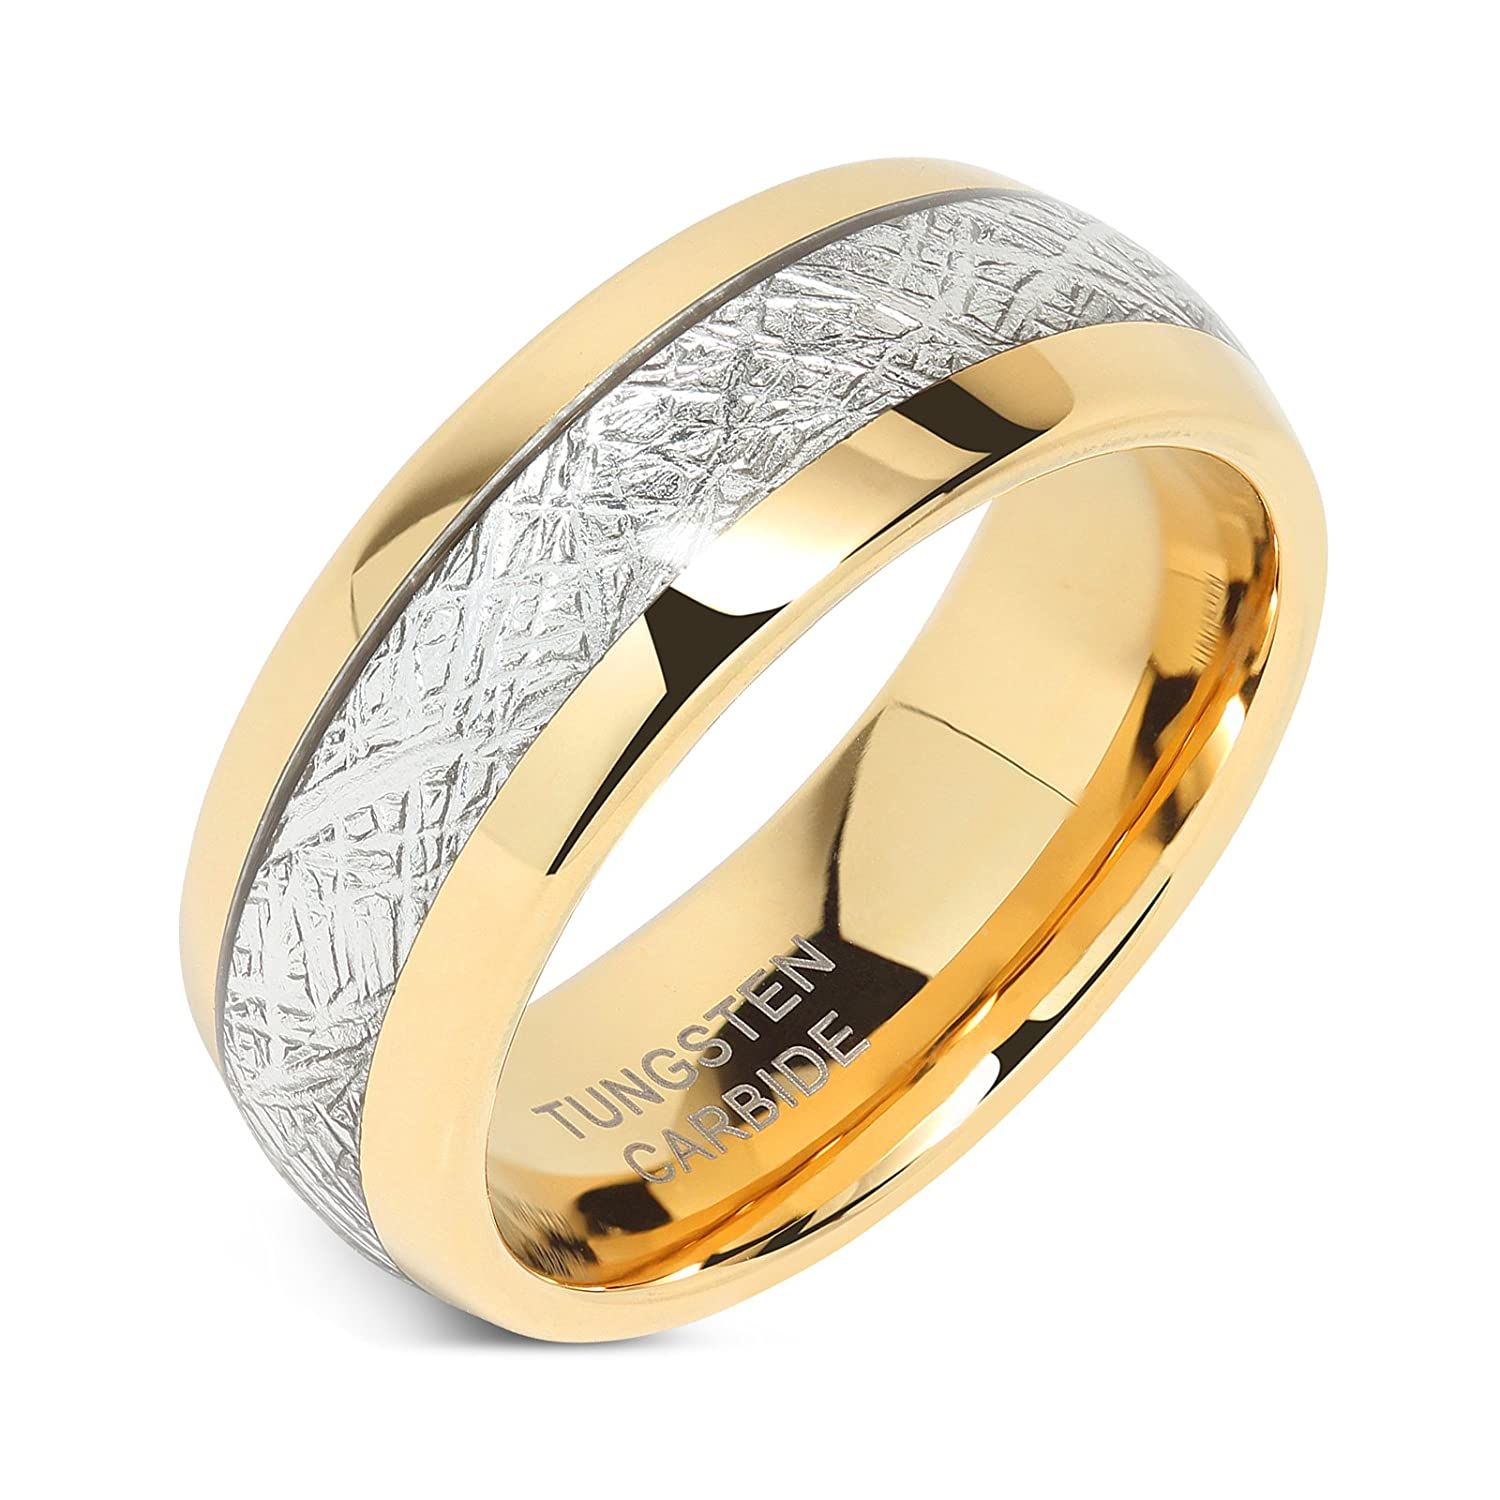 odyssey rings 6mm or 8mm tungsten carbide 18k gold plated mens